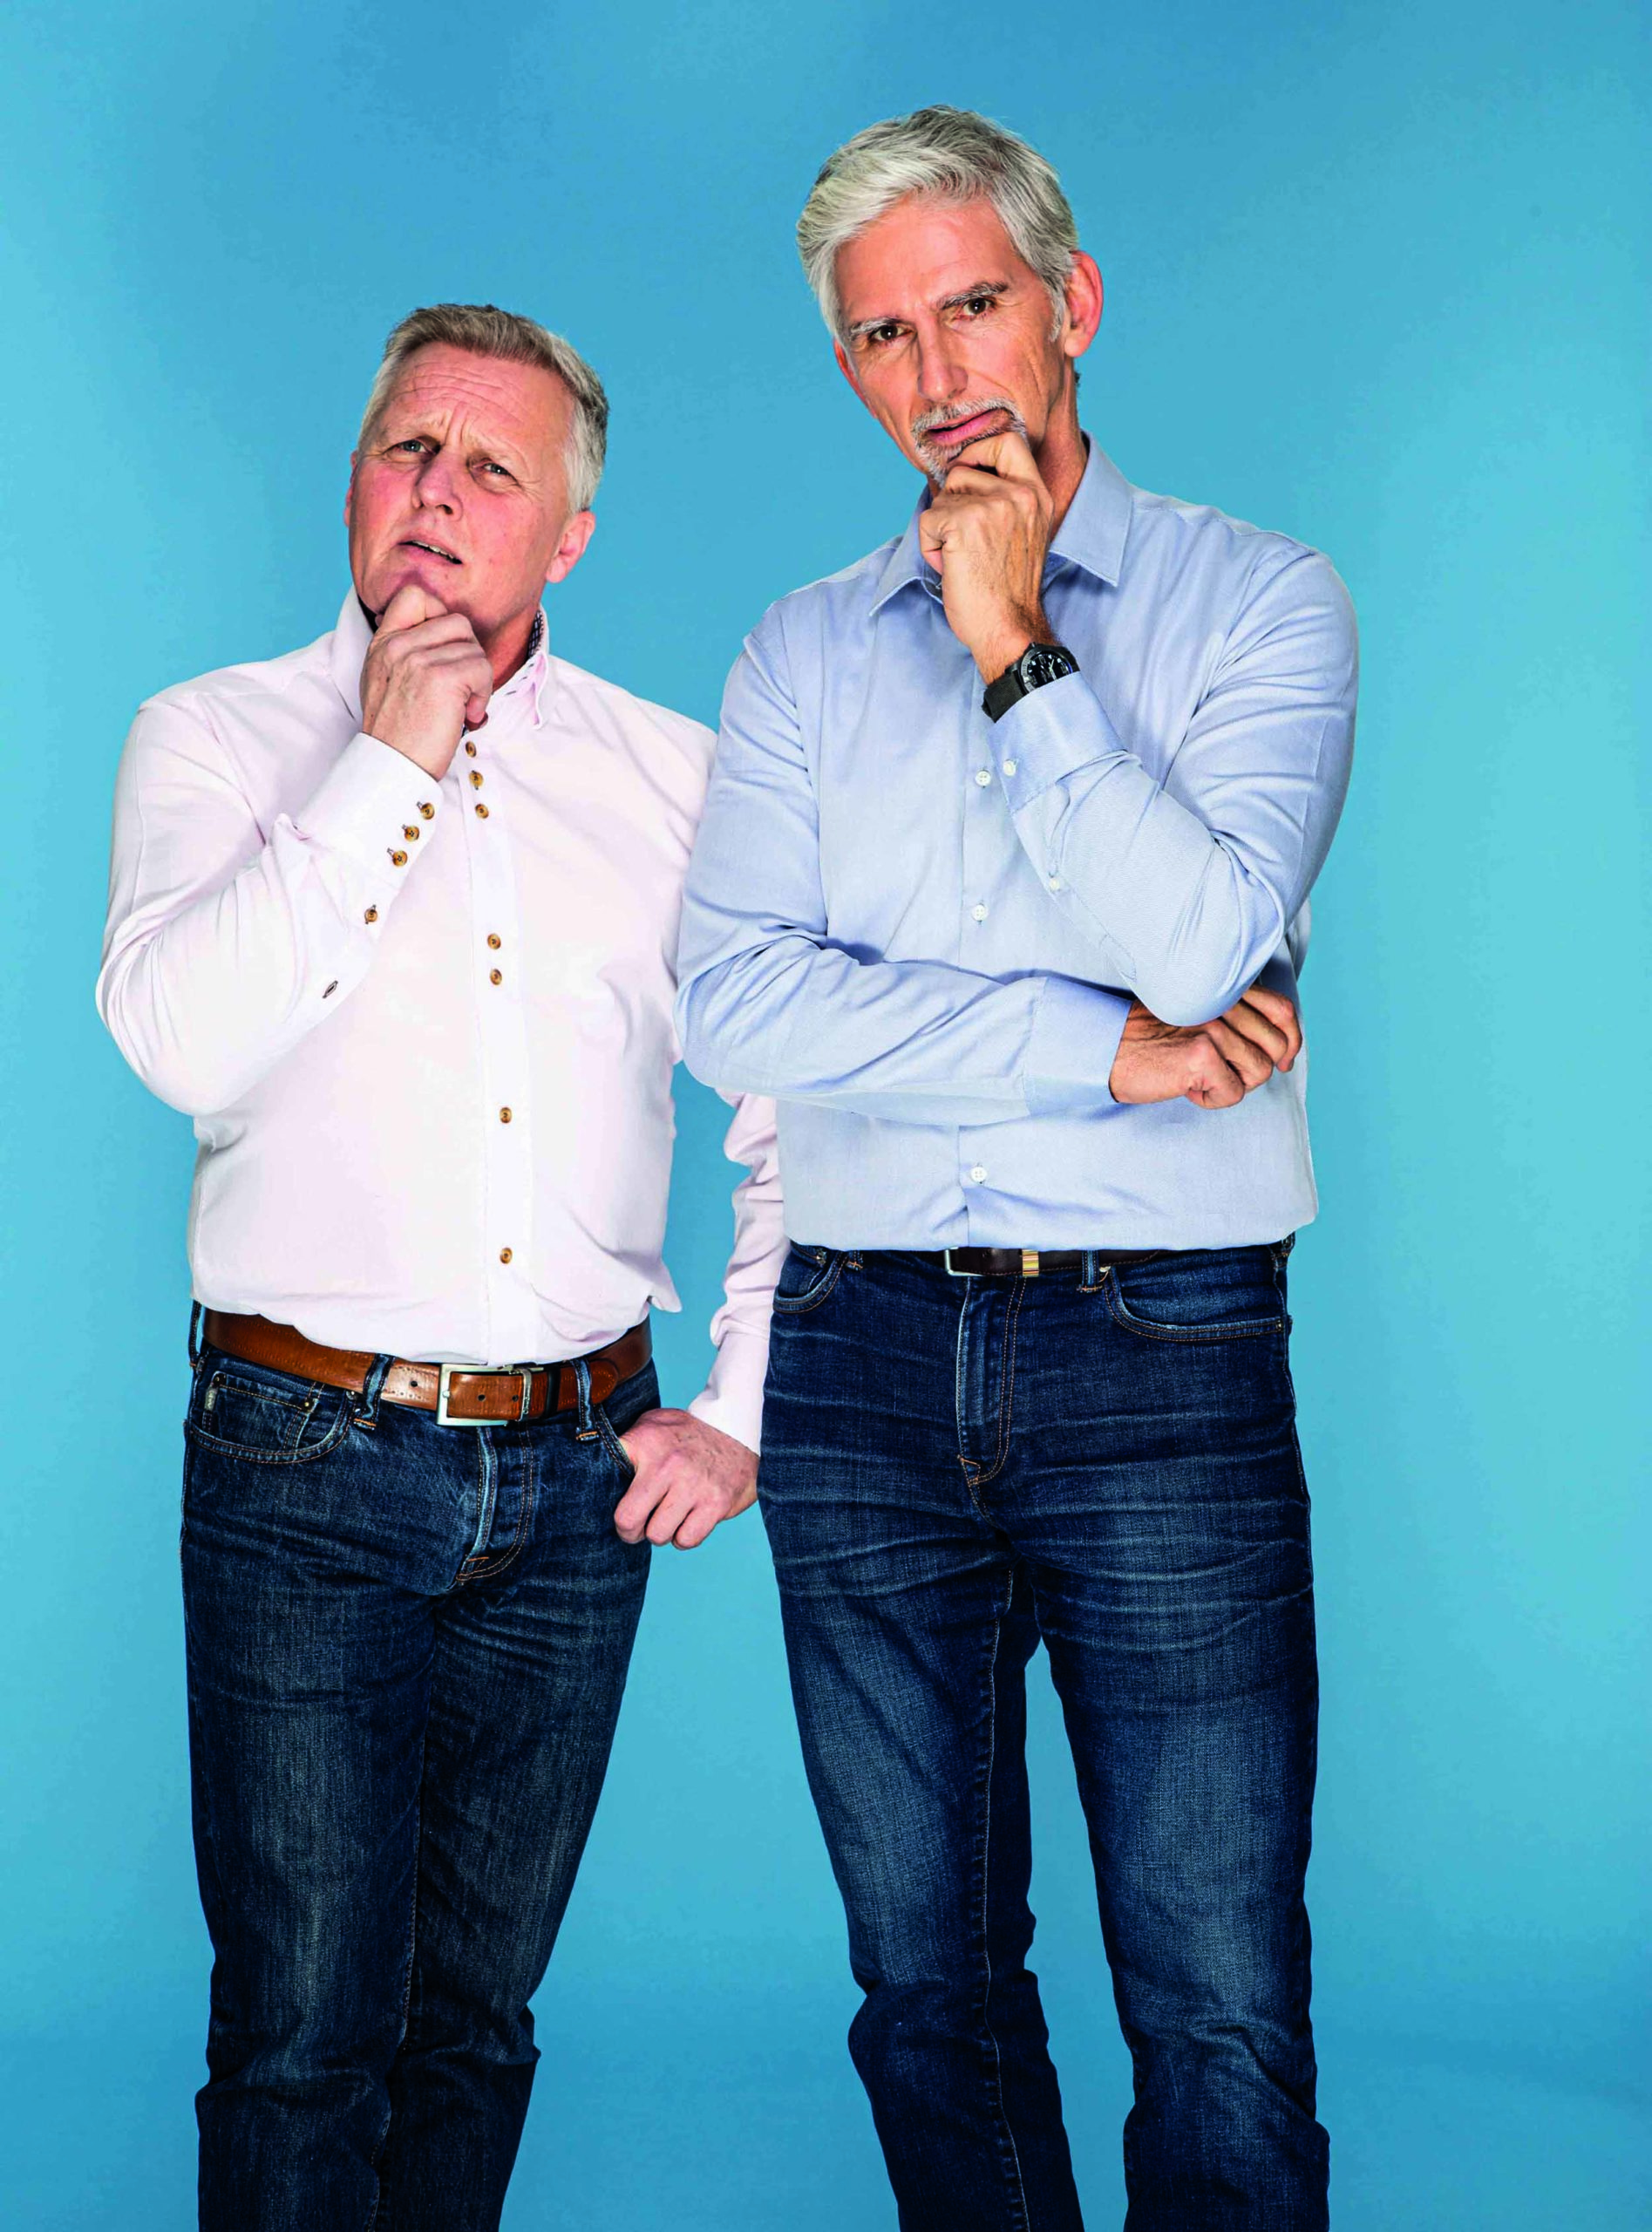 Johnny-Herbert-and-Damon-Hill-in-questioning-poses-in-a-publicity-shot-scaled